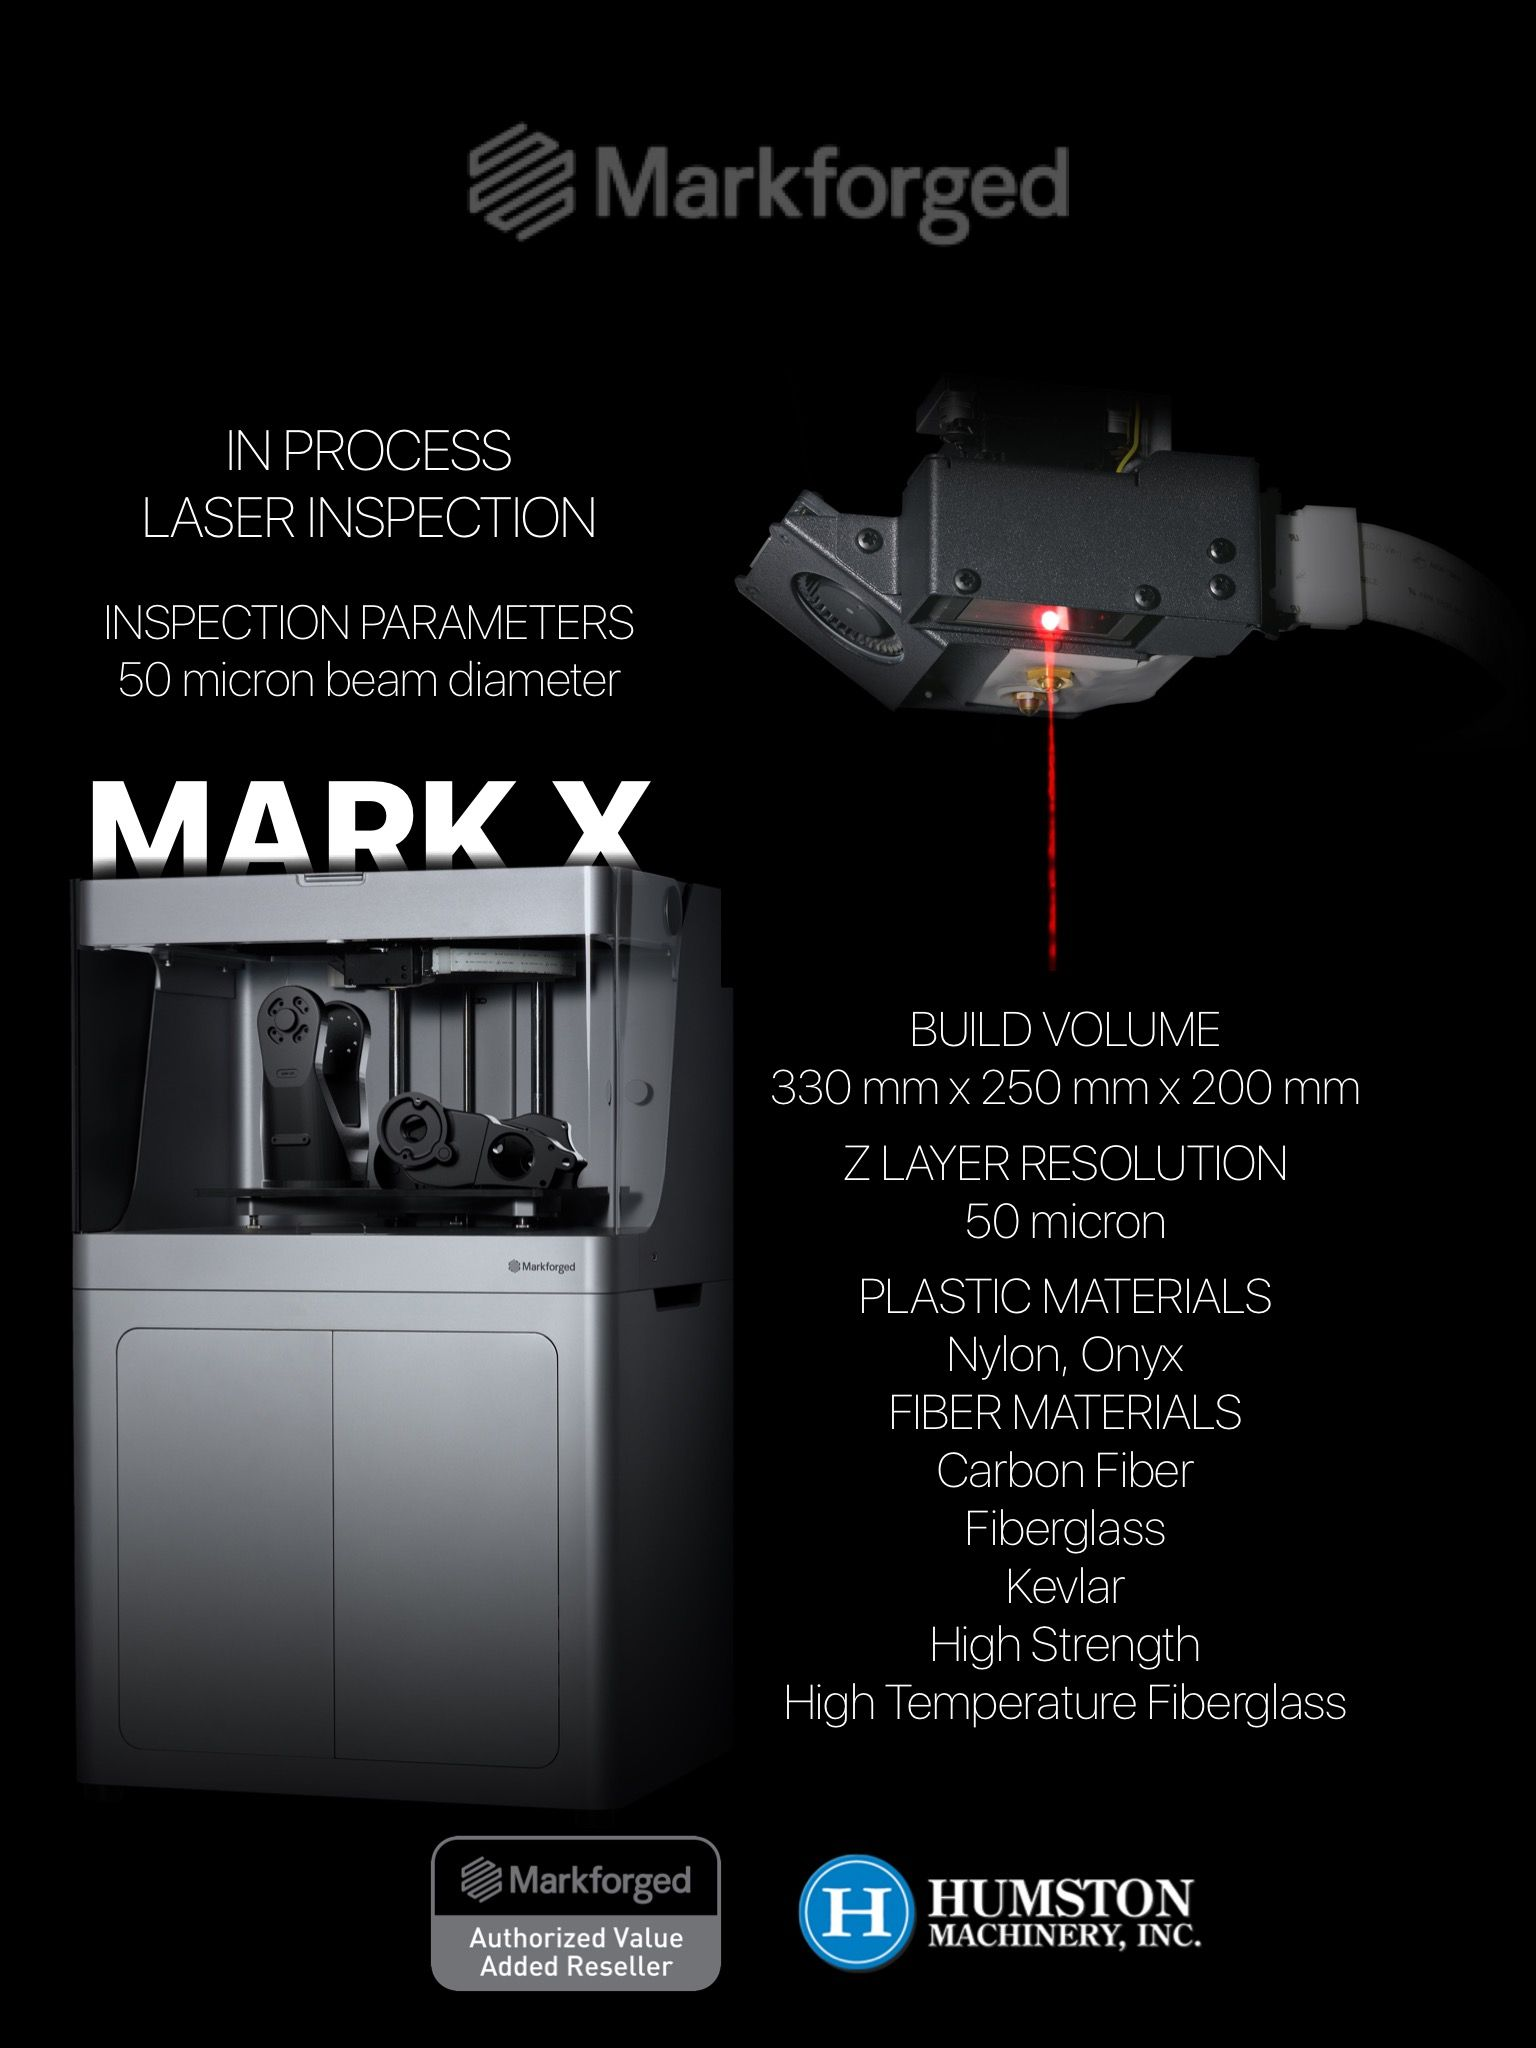 Looking for the new Markforged Mark X?! It's finally here, contact Humston Machinery for details and a quote. www.humstonmachinery.com #3d #3dprinter #3dprinting #markforged #indiana #distributor #humstonmachinery